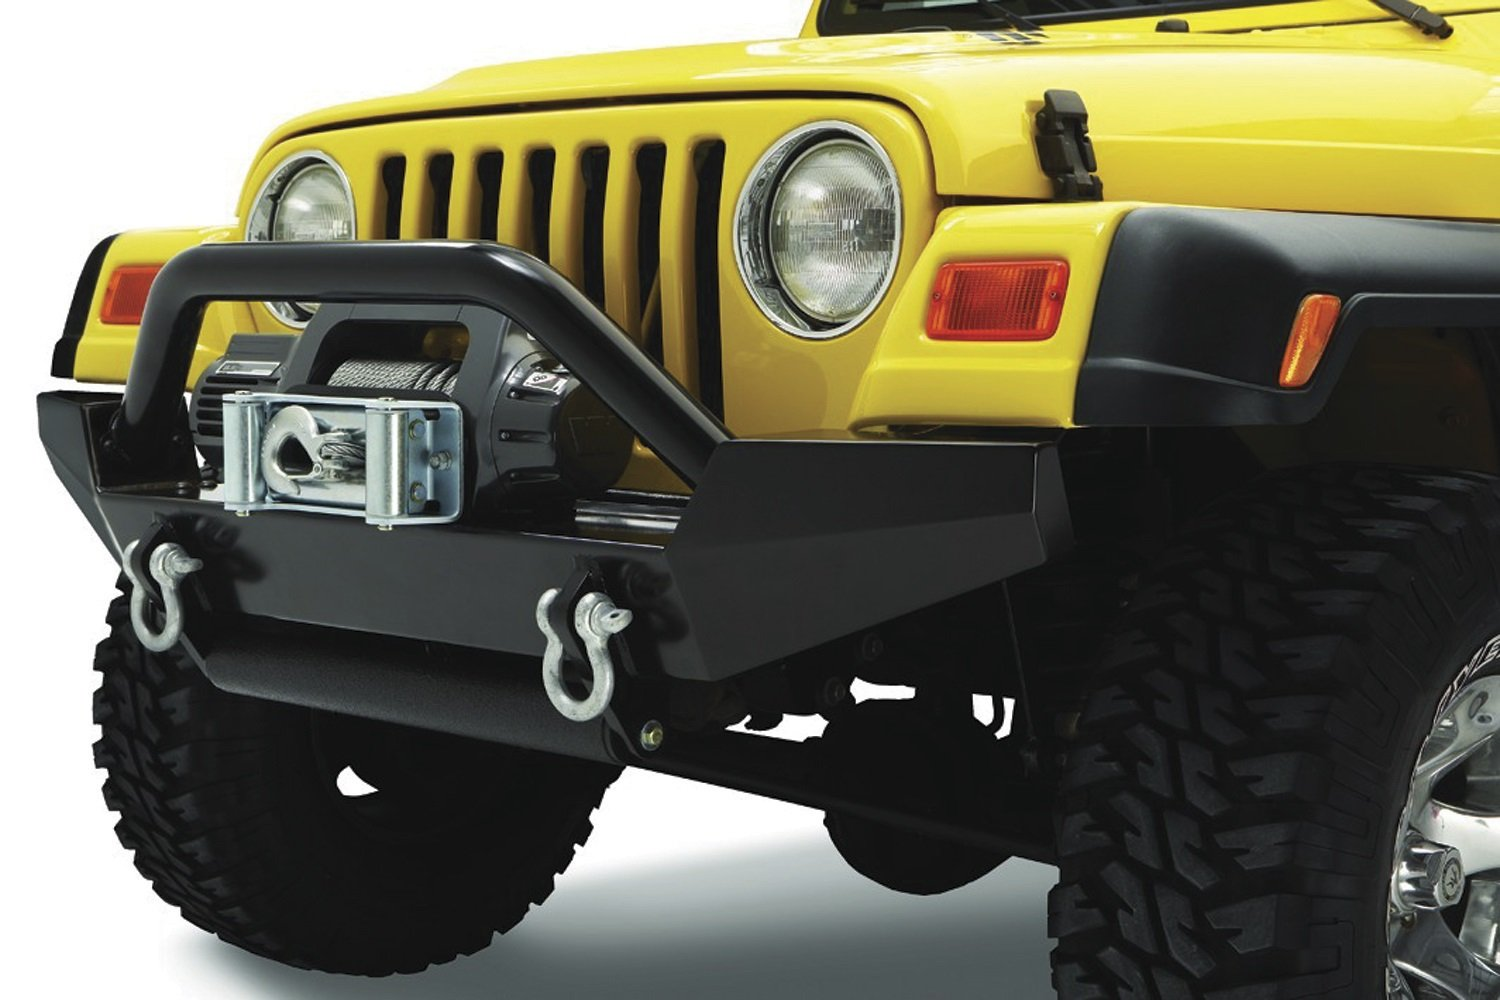 Bestop 44906-01 HighRock 4x4 Matte Black Grill Guard for 1997-2006 Wrangler TJ /& TJD